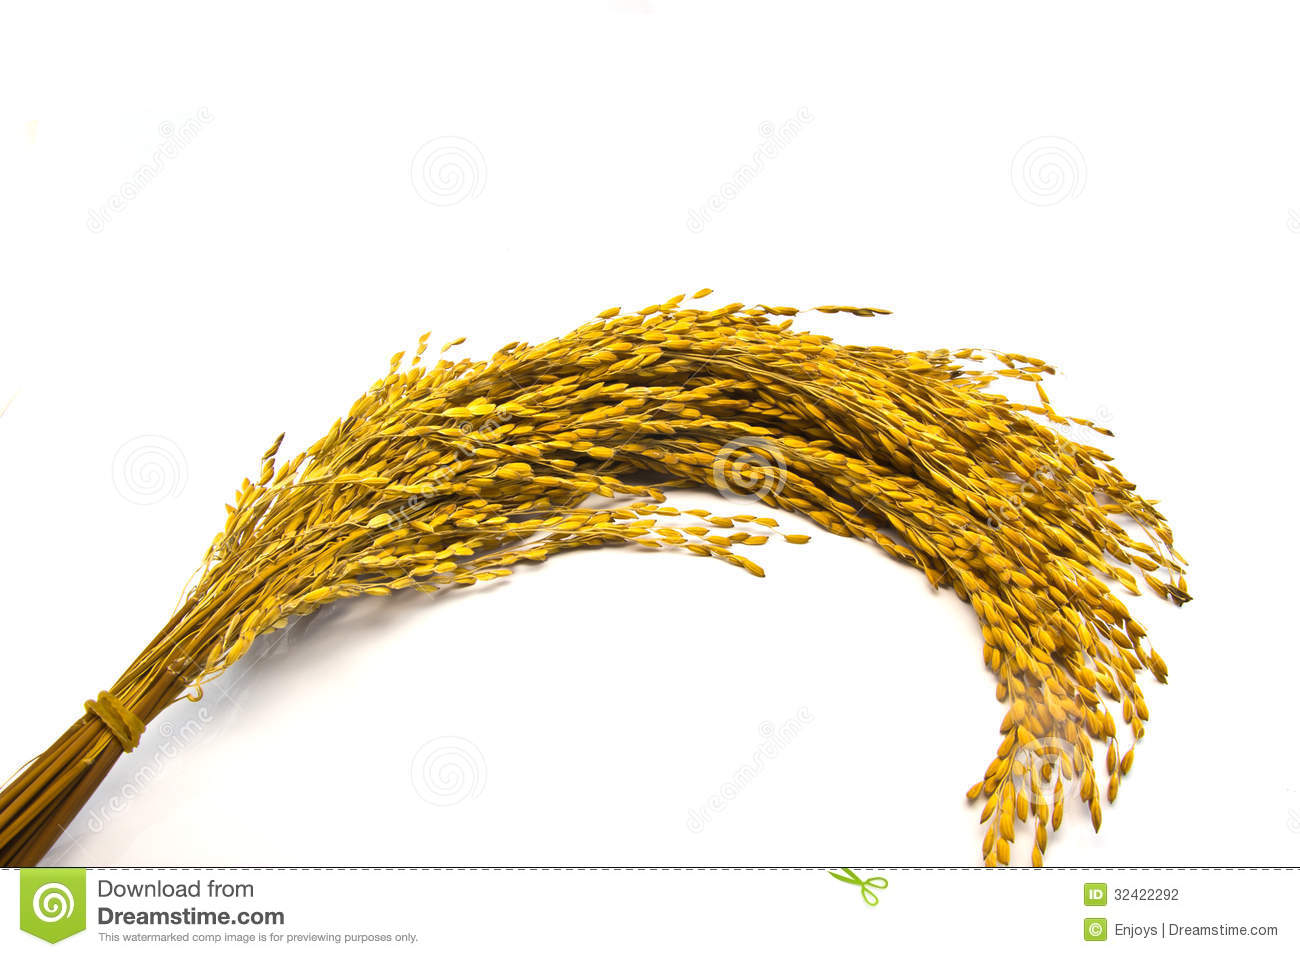 Paddy crop clipart.